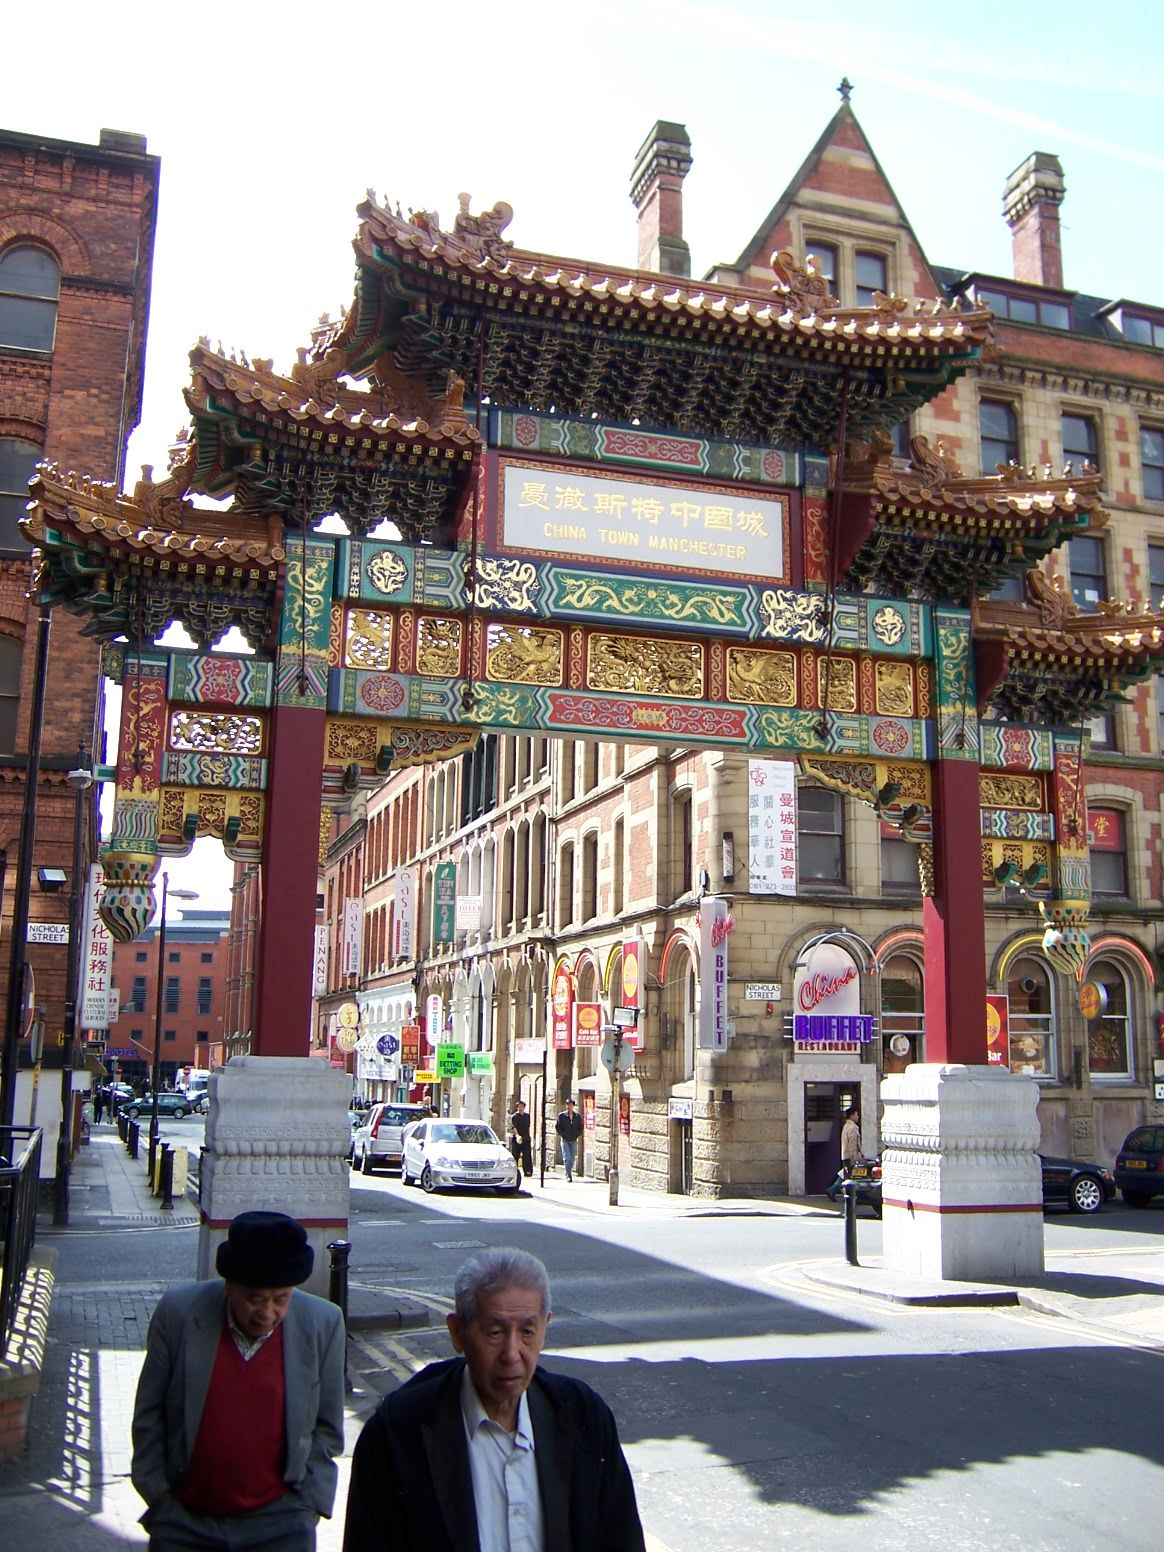 Chinatown In Manchester, UK